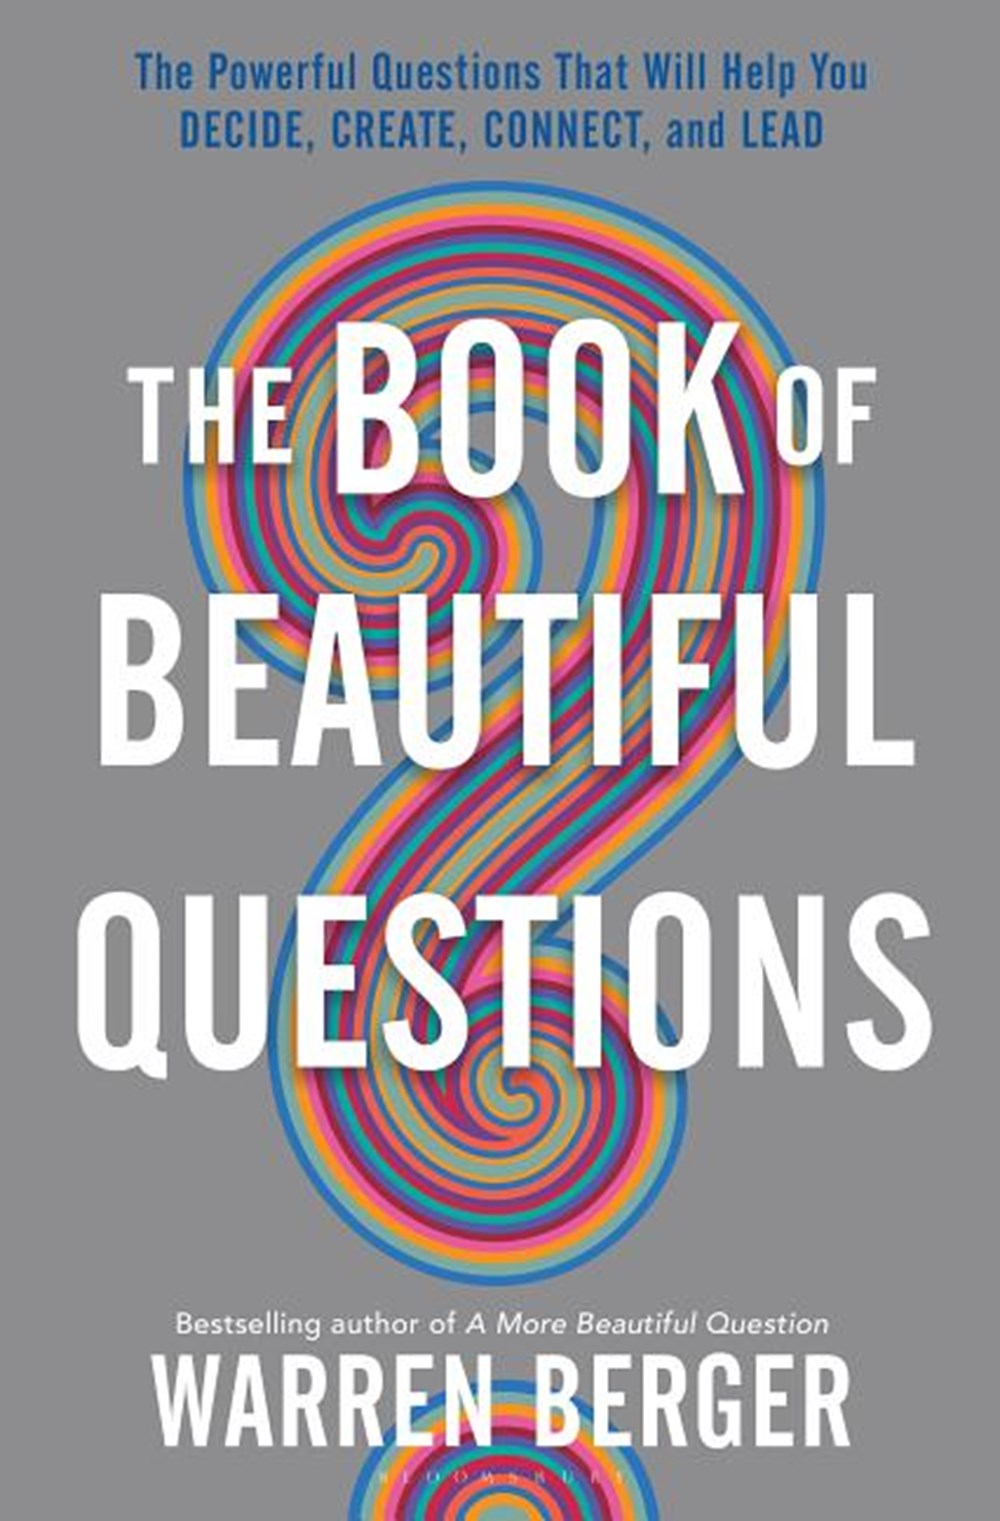 Book of Beautiful Questions The Powerful Questions That Will Help You Decide, Create, Connect, and L